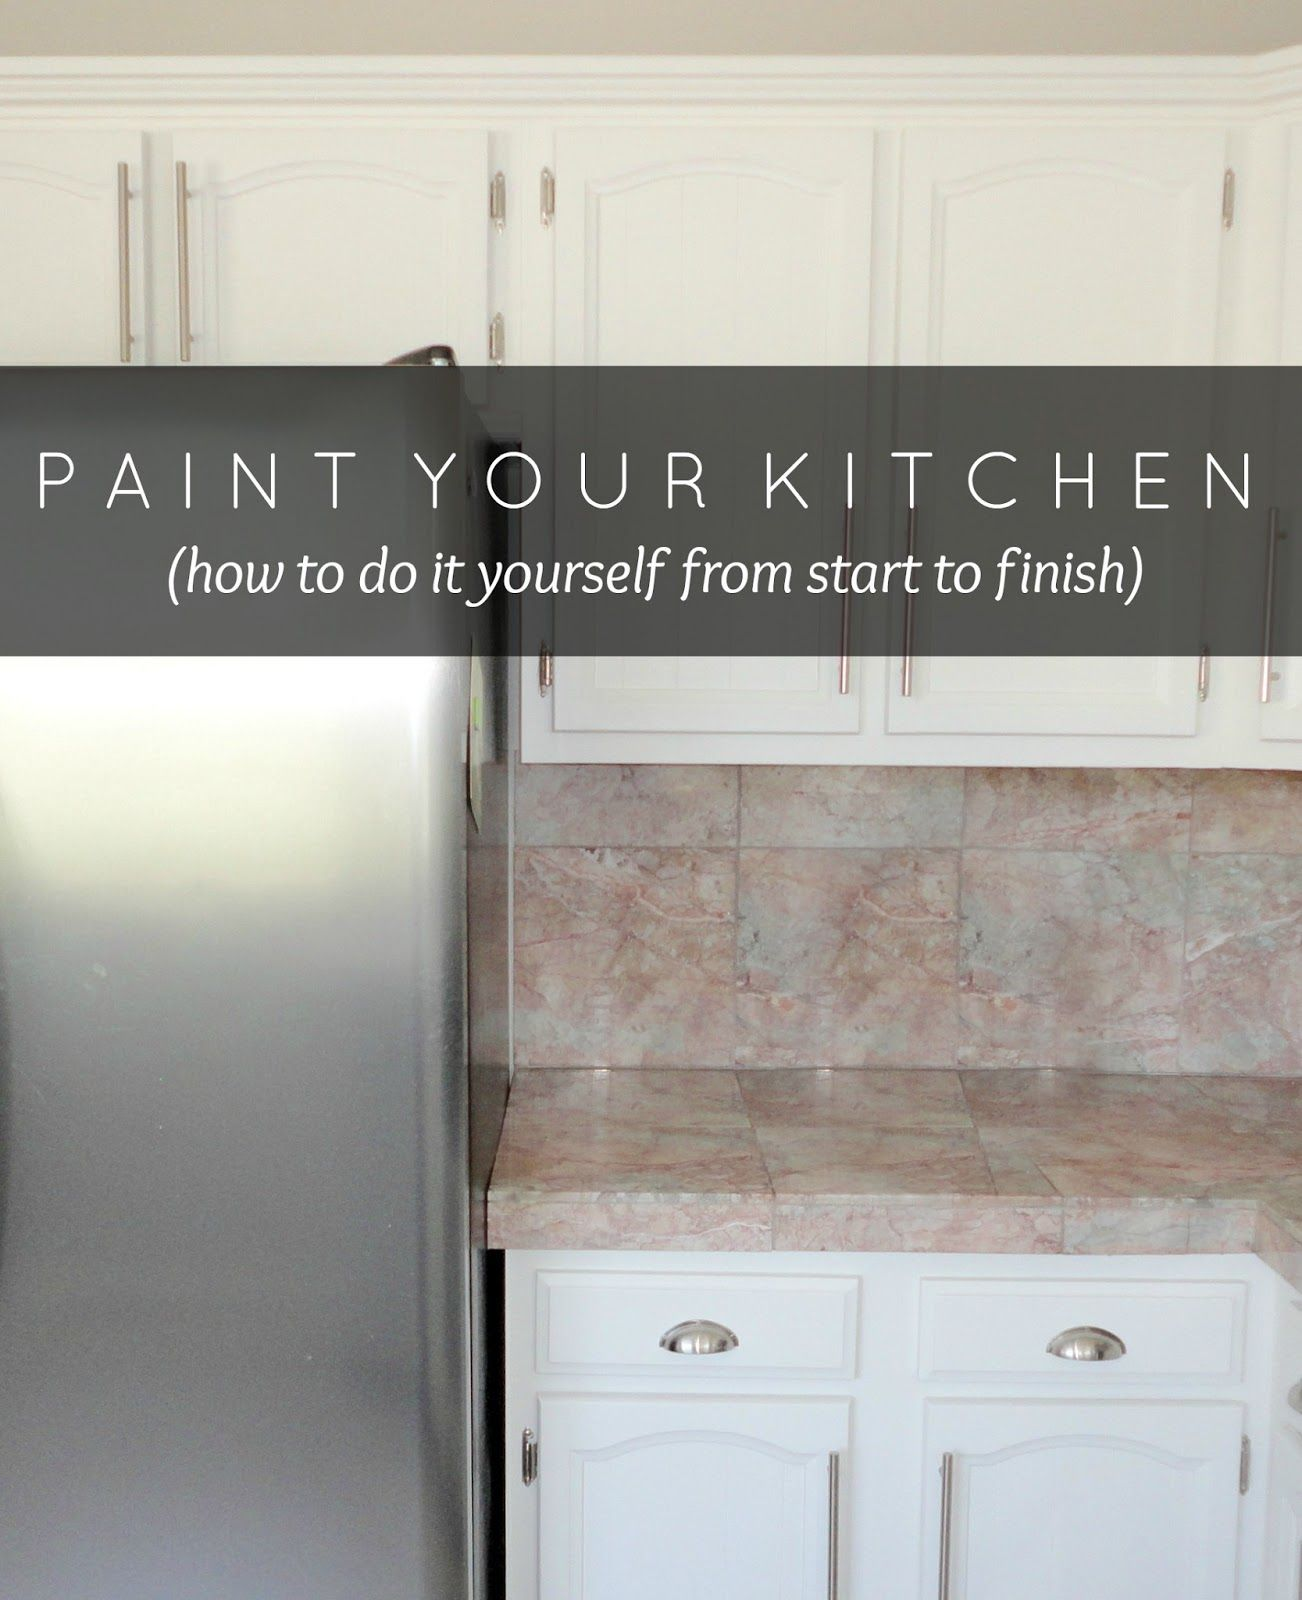 What Sheen Should I Paint My Kitchen Cabinets | Home ...